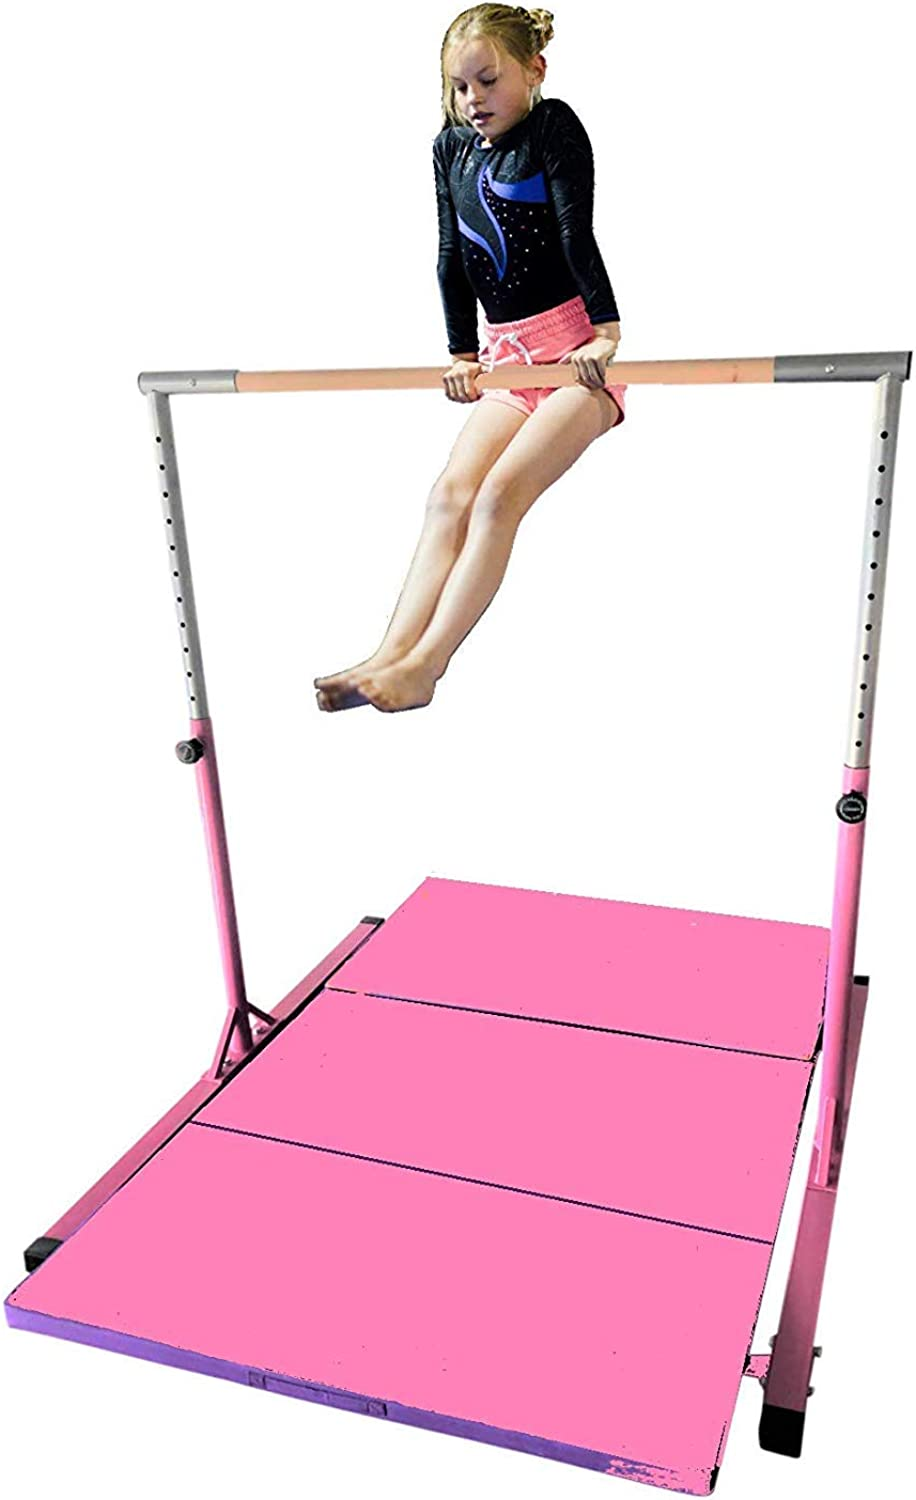 ToyKraft Kids Kip Bar with 4x8 FT Pink Tumble Mat Jungle Gym Horizontal Height Adjustable Expandable Junior Training Playground with Pink Mat